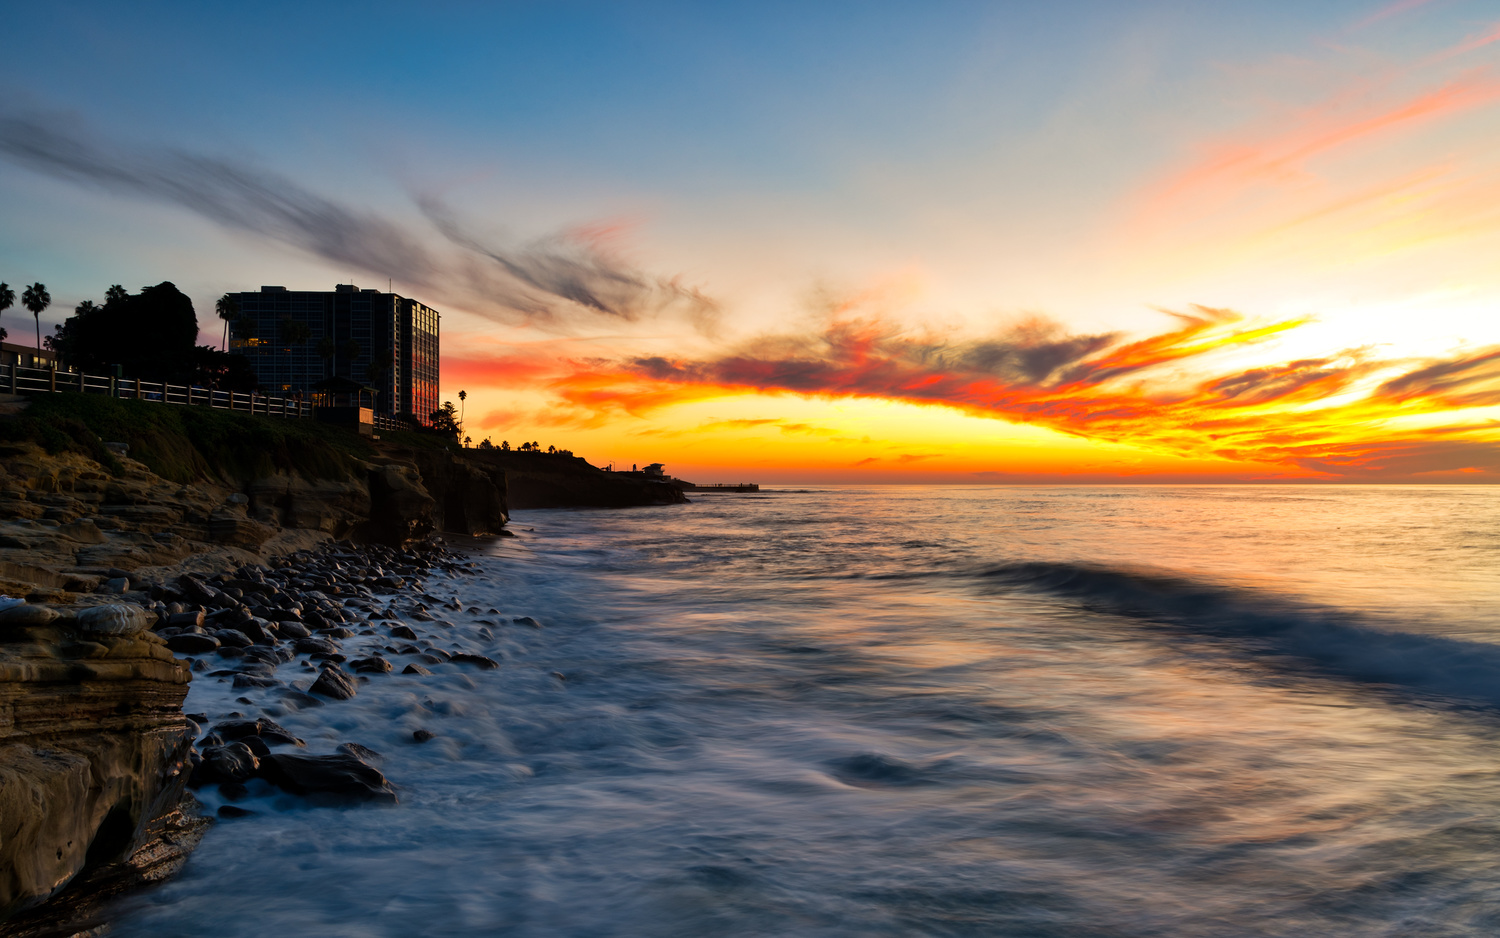 Sunset by the Sea by Keshava Mysore